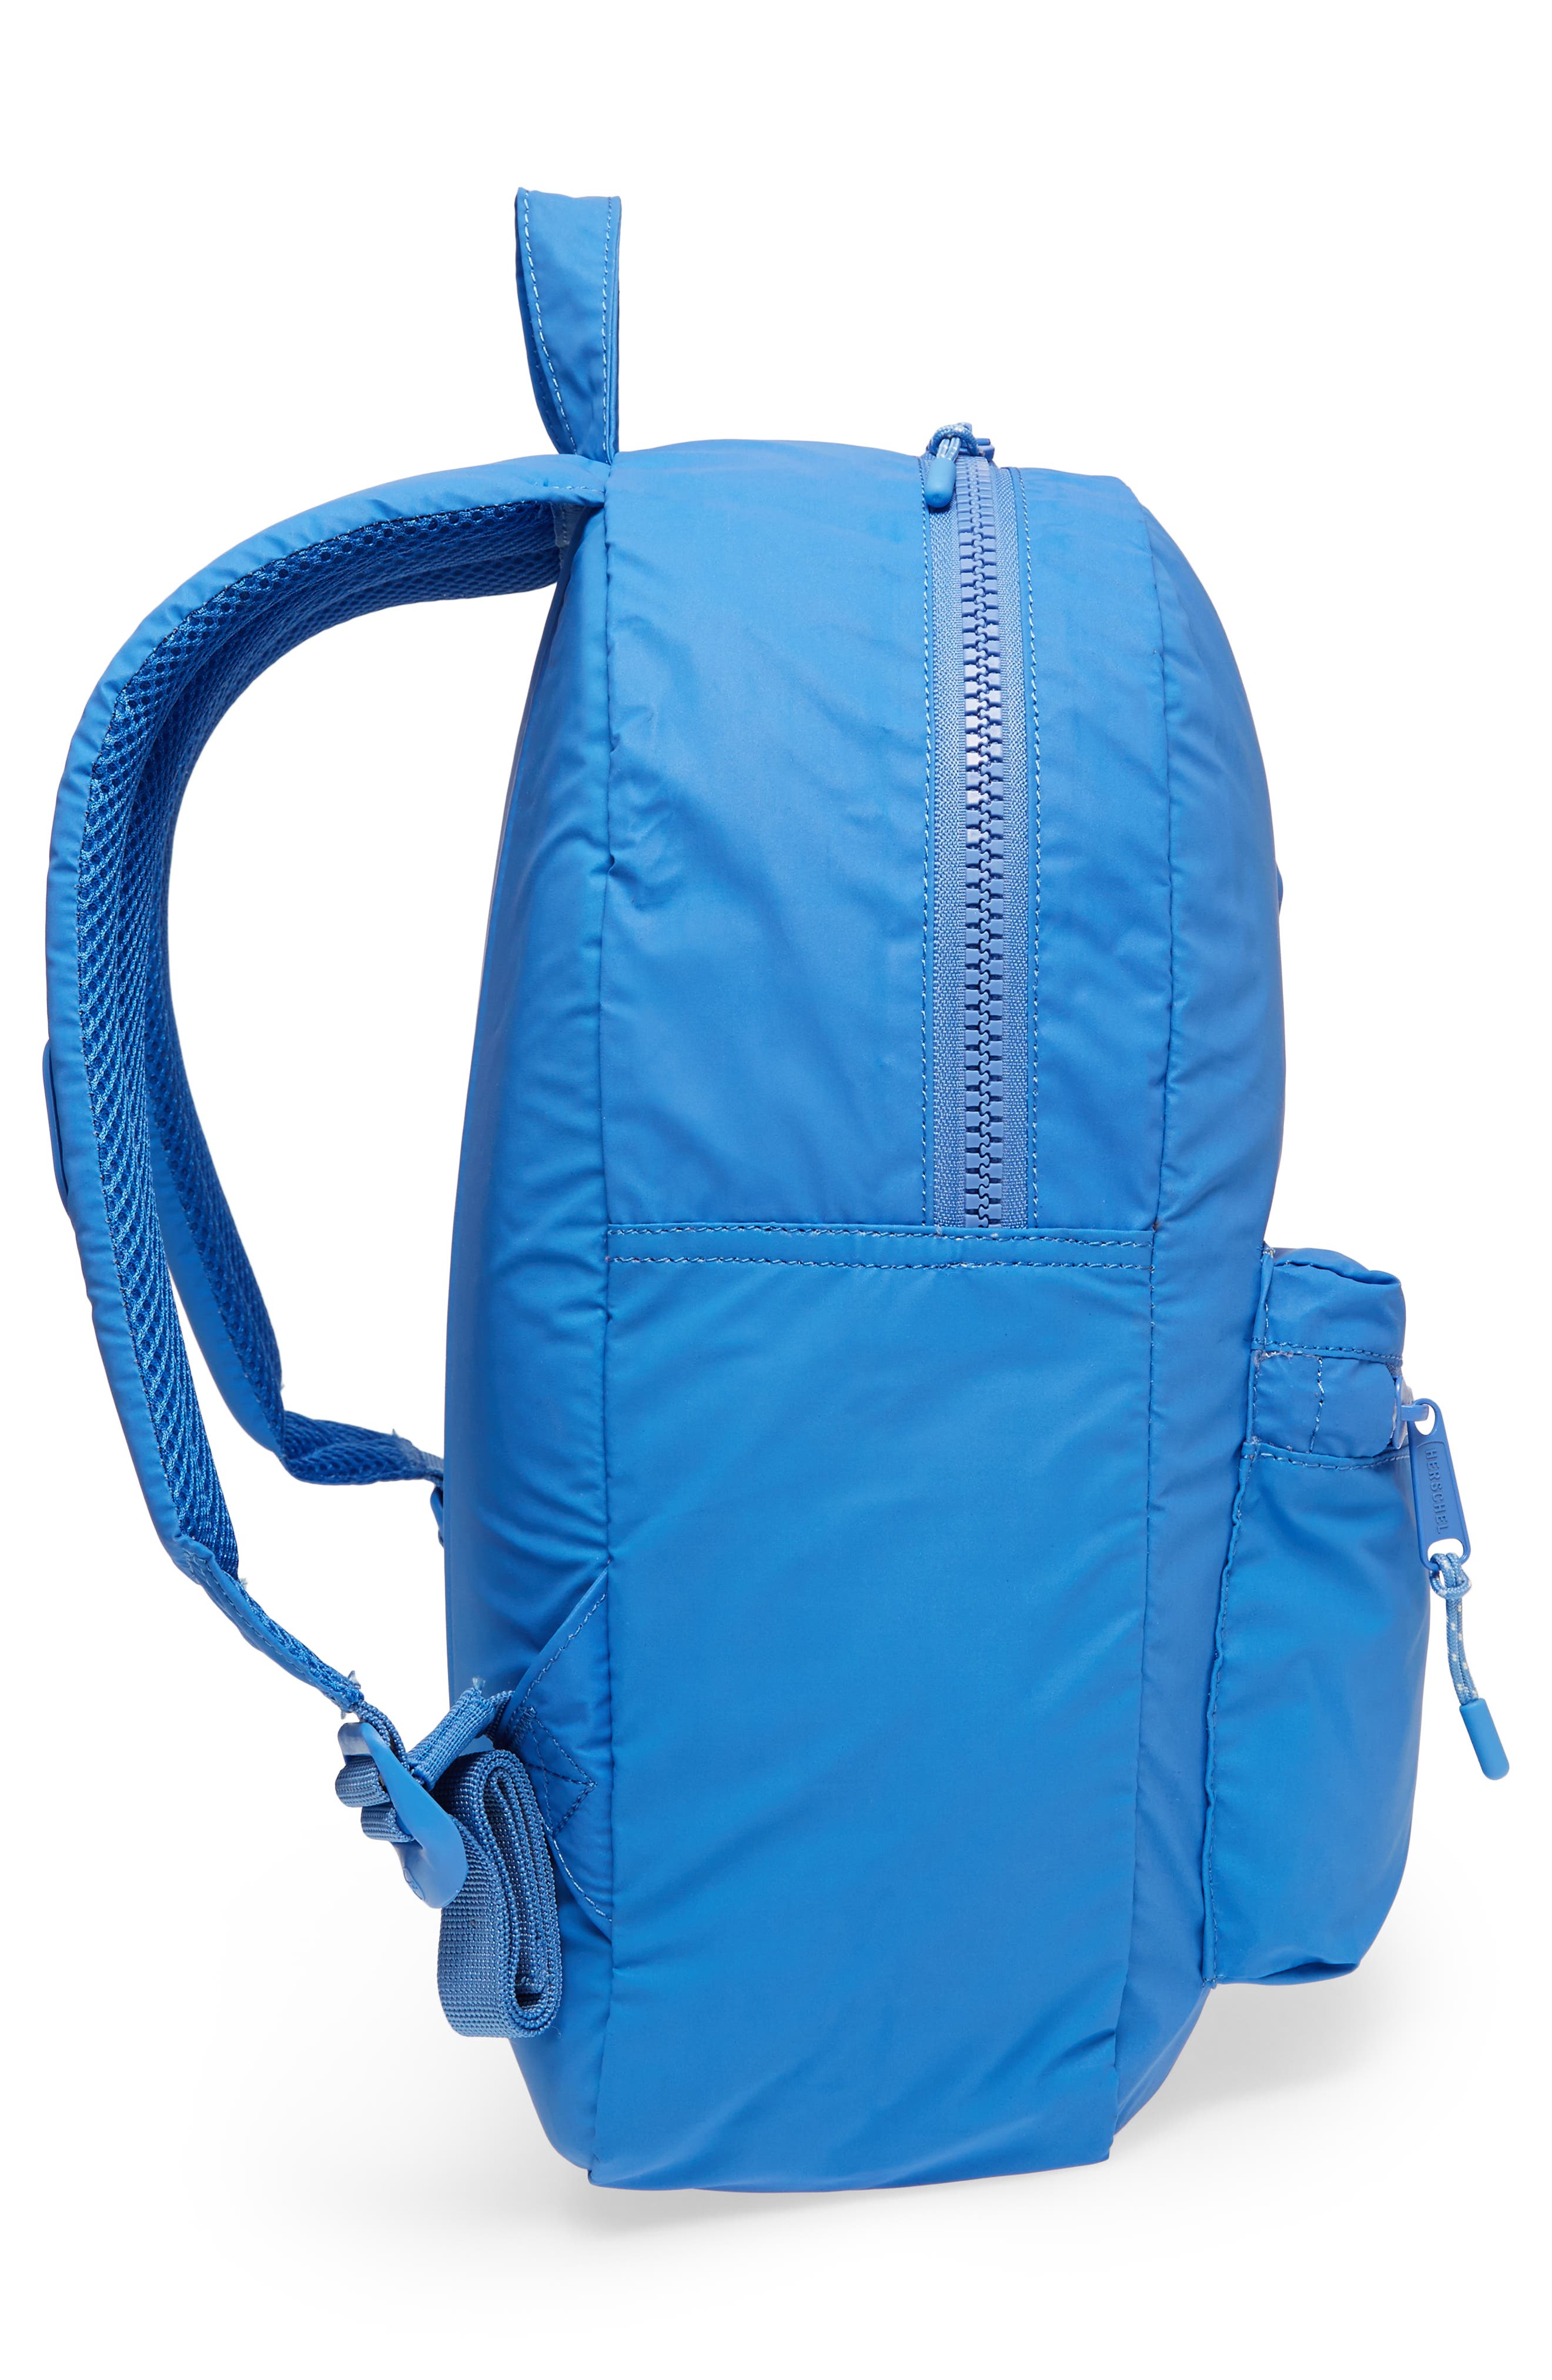 Heritage Backpack,                             Alternate thumbnail 3, color,                             Blue Reflective Rubber